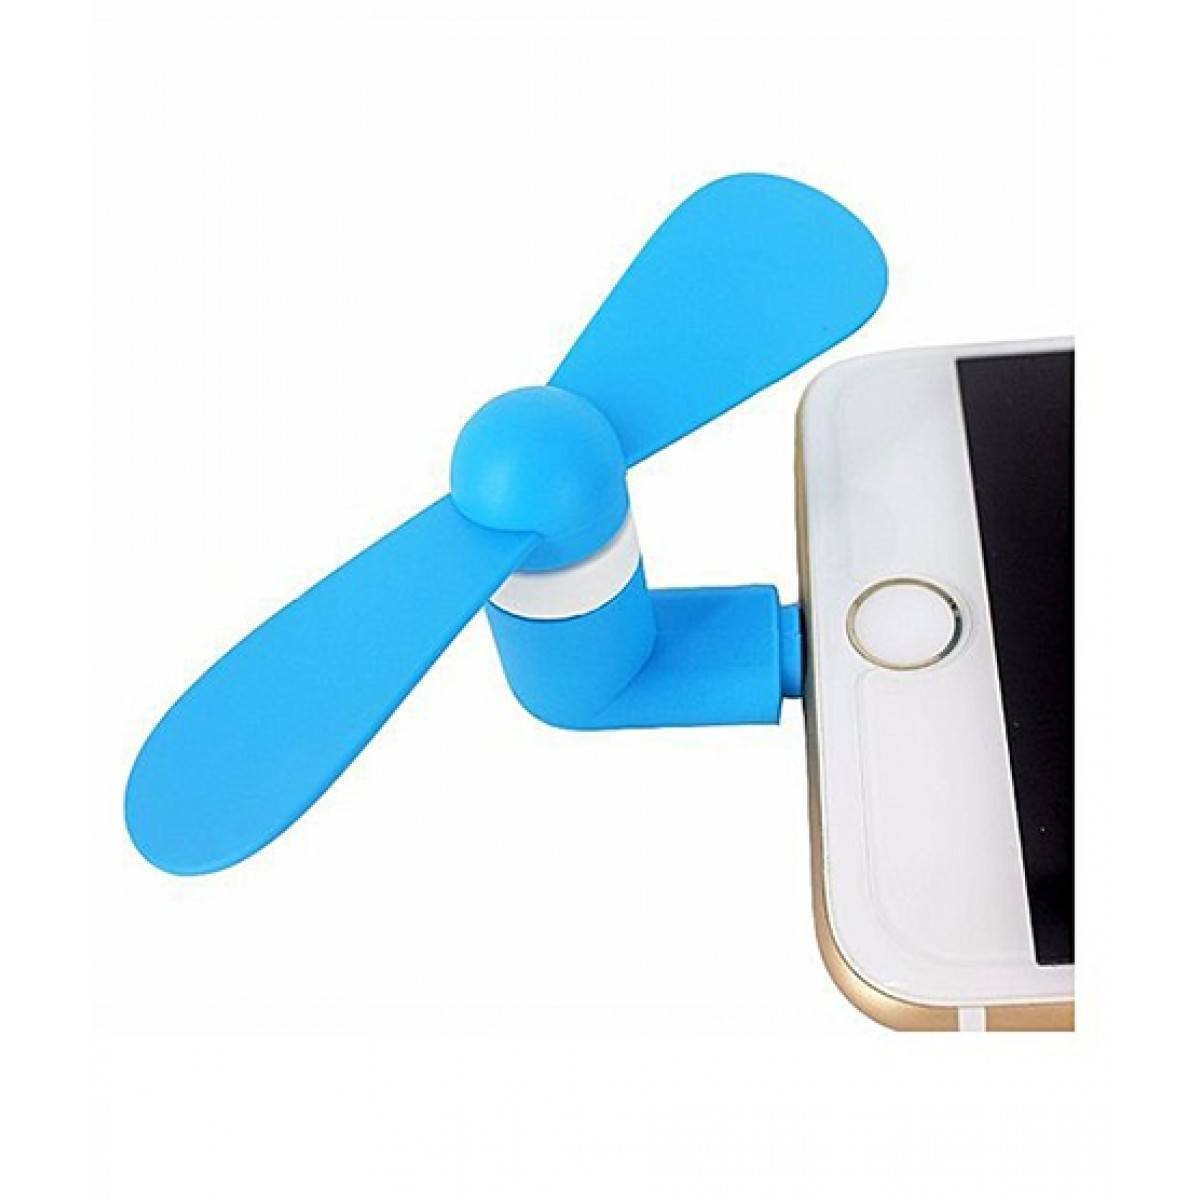 Portable USB Mini Fan For iPhone 5/5s/6/6s/6s Plus